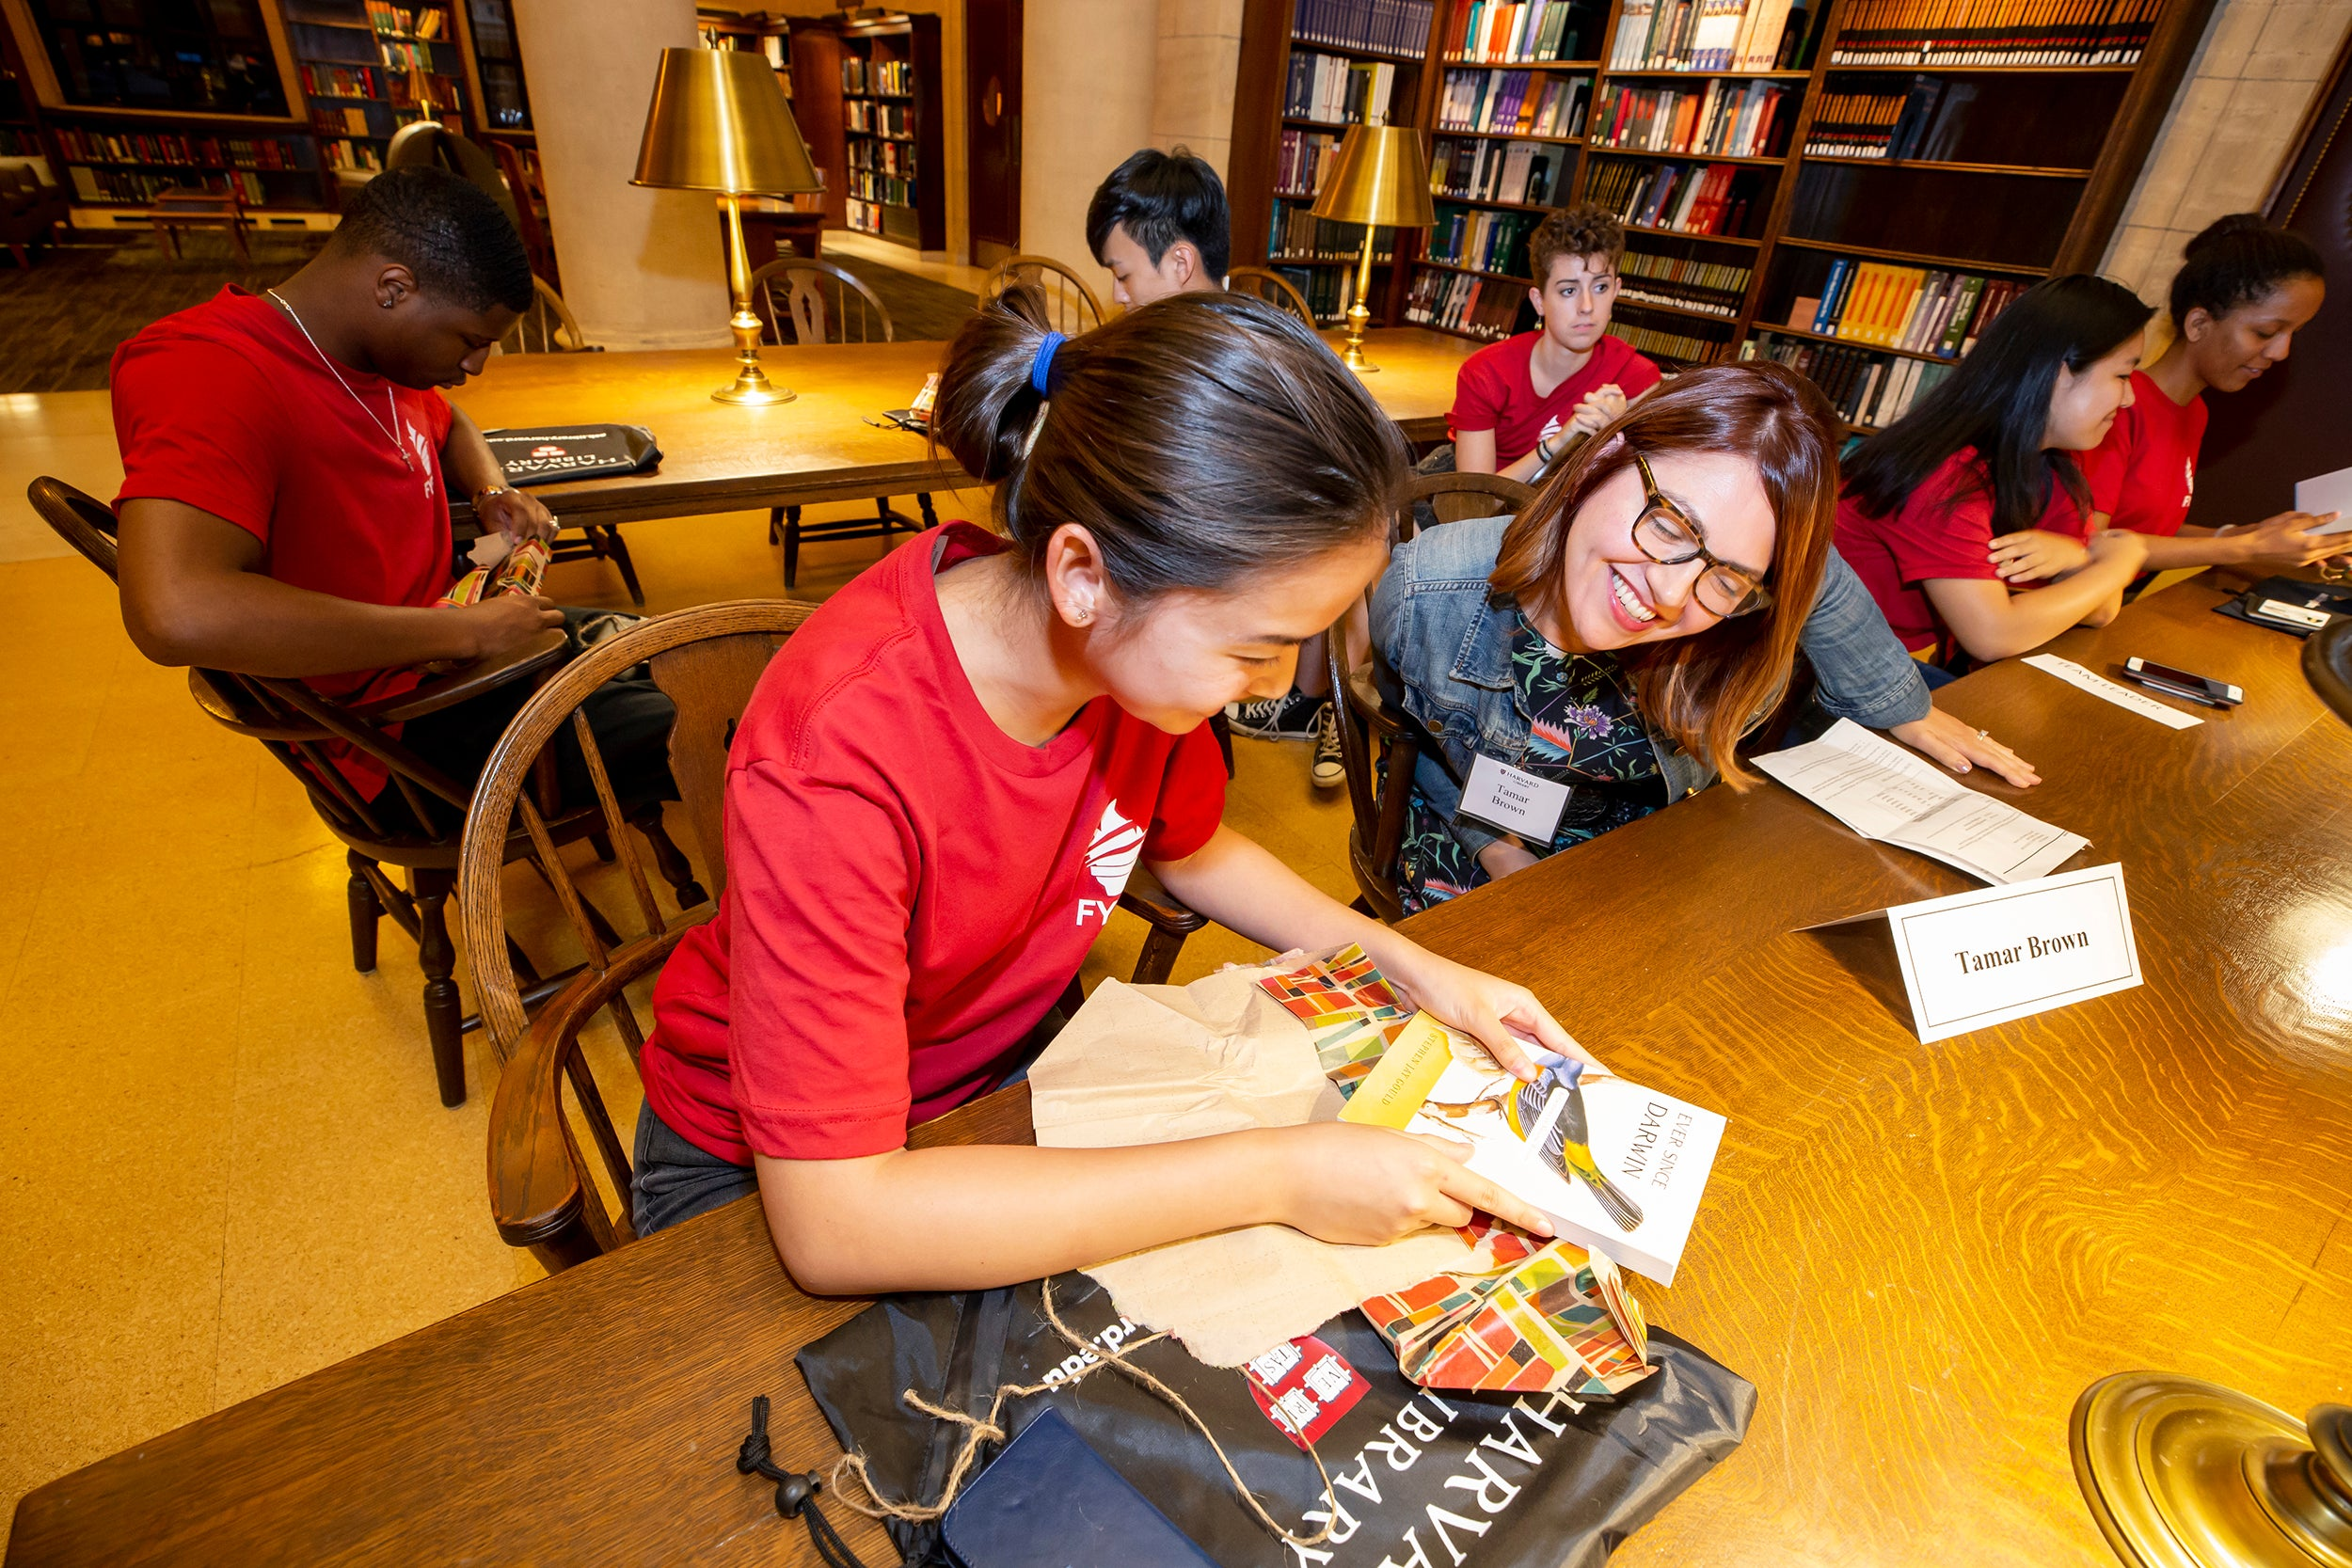 The FAS program First-Year Librarians is an effort to acquaint first-years with the academic resources available to them by strengthening the bonds between students and library staff.